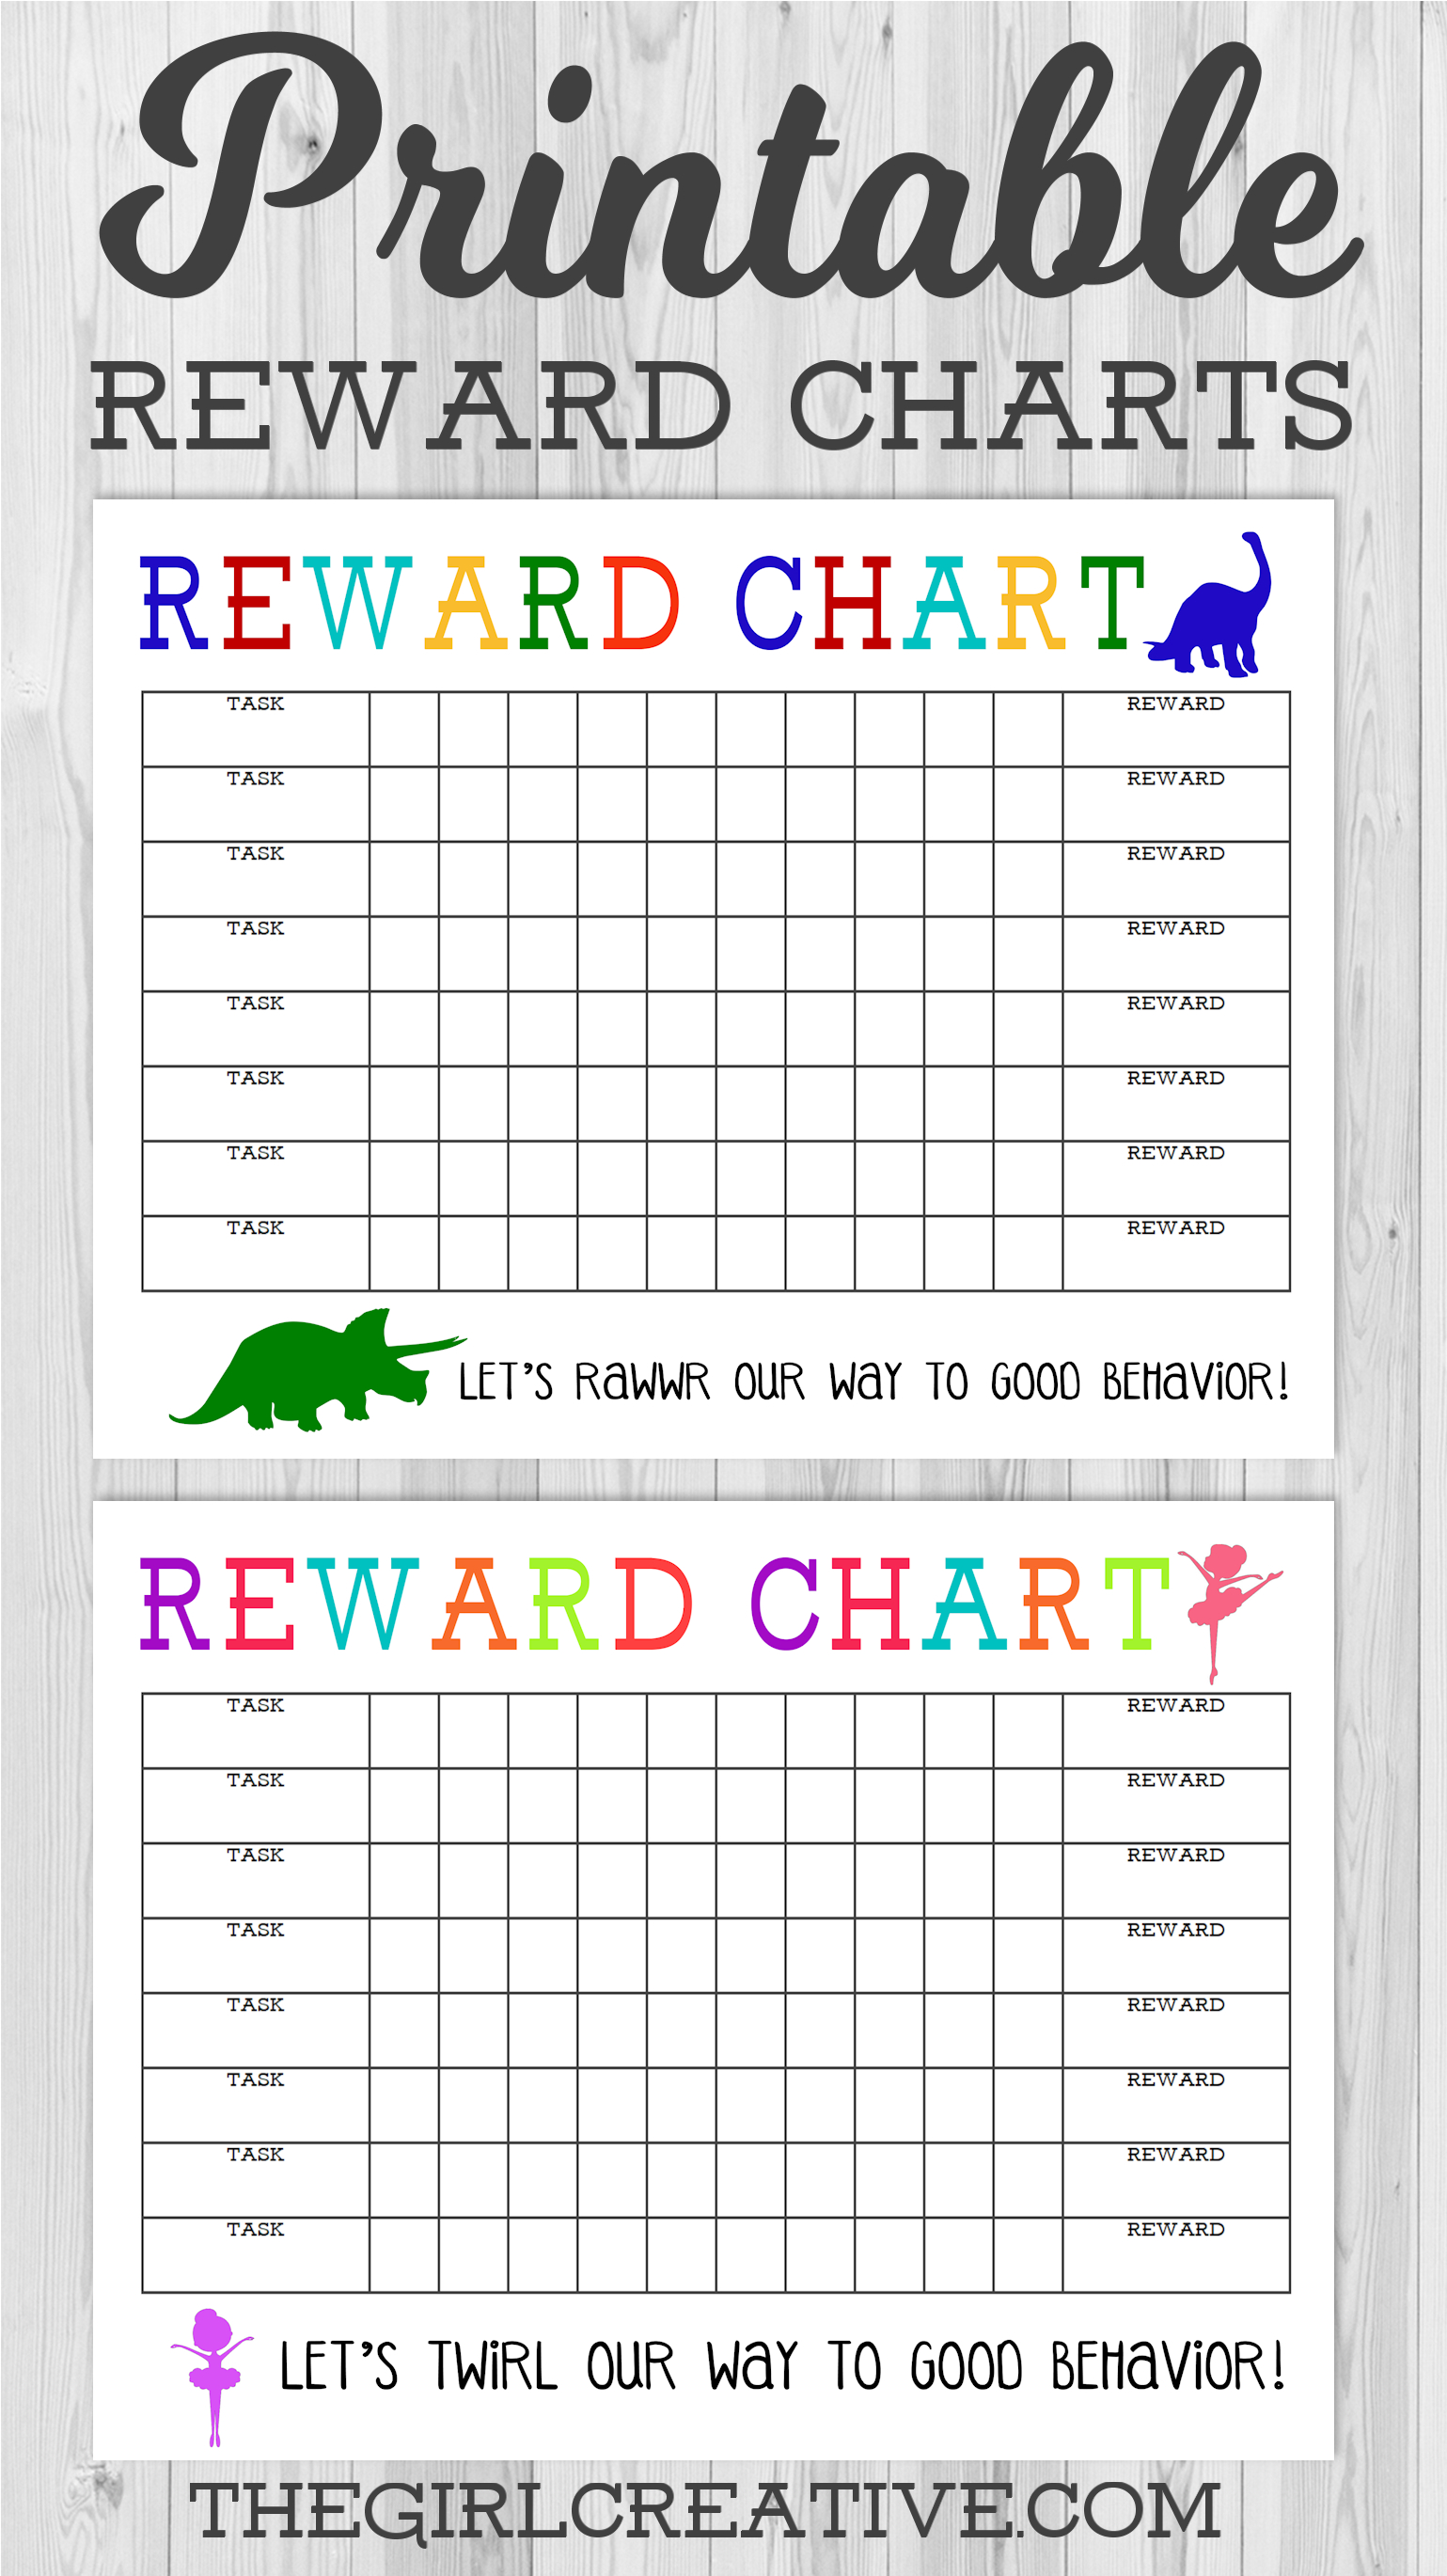 Printable Reward Chart - The Girl Creative - Free Printable Incentive Charts For School